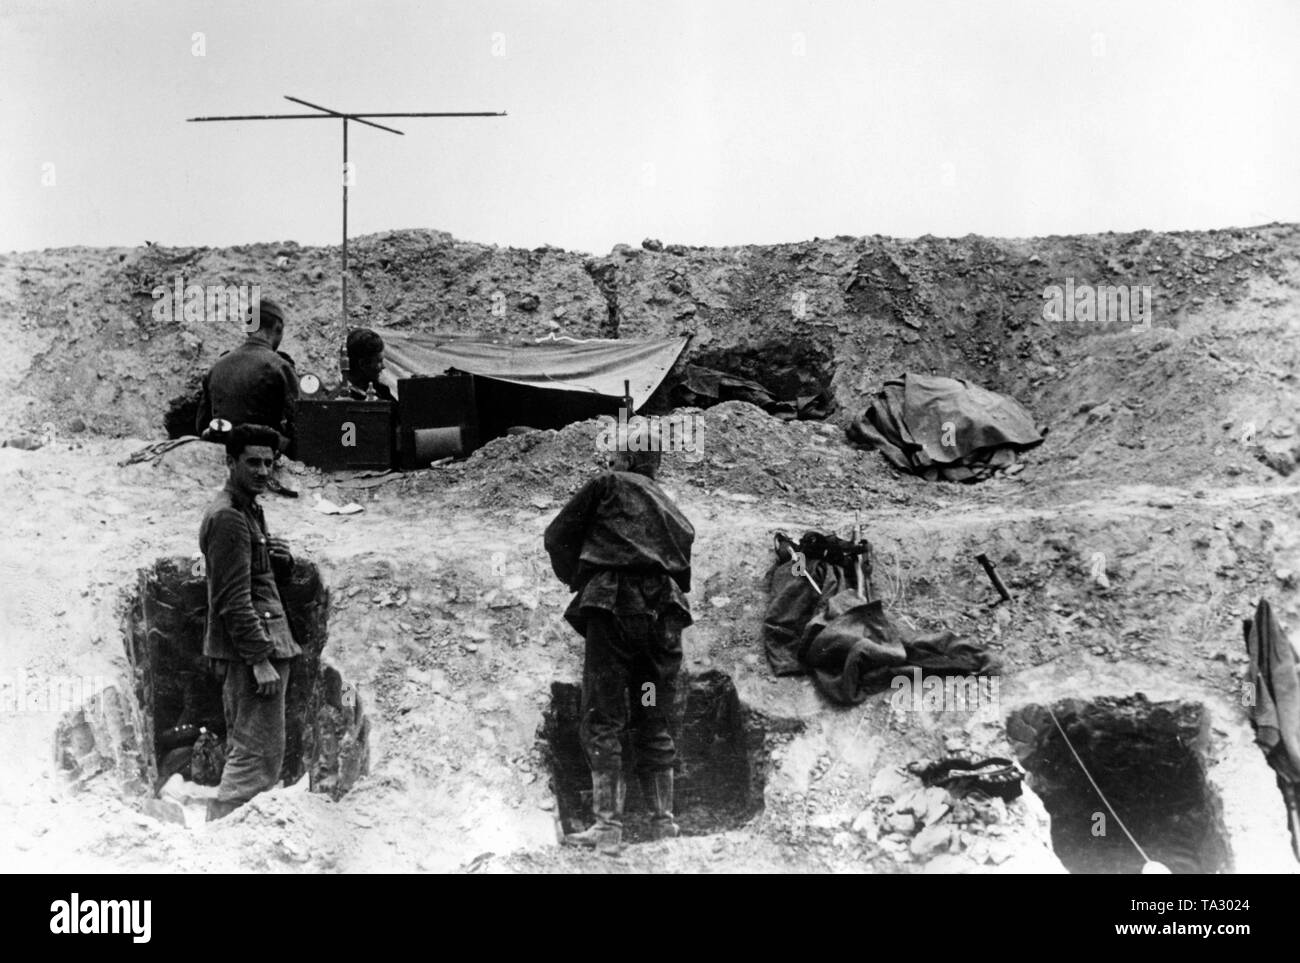 A regiment command post of the Waffen-SS on the eastern front in an antitank ditch, which the Wehrmacht had taken over from the Red Army. Photo: war correspondent Wiesebach. Stock Photo